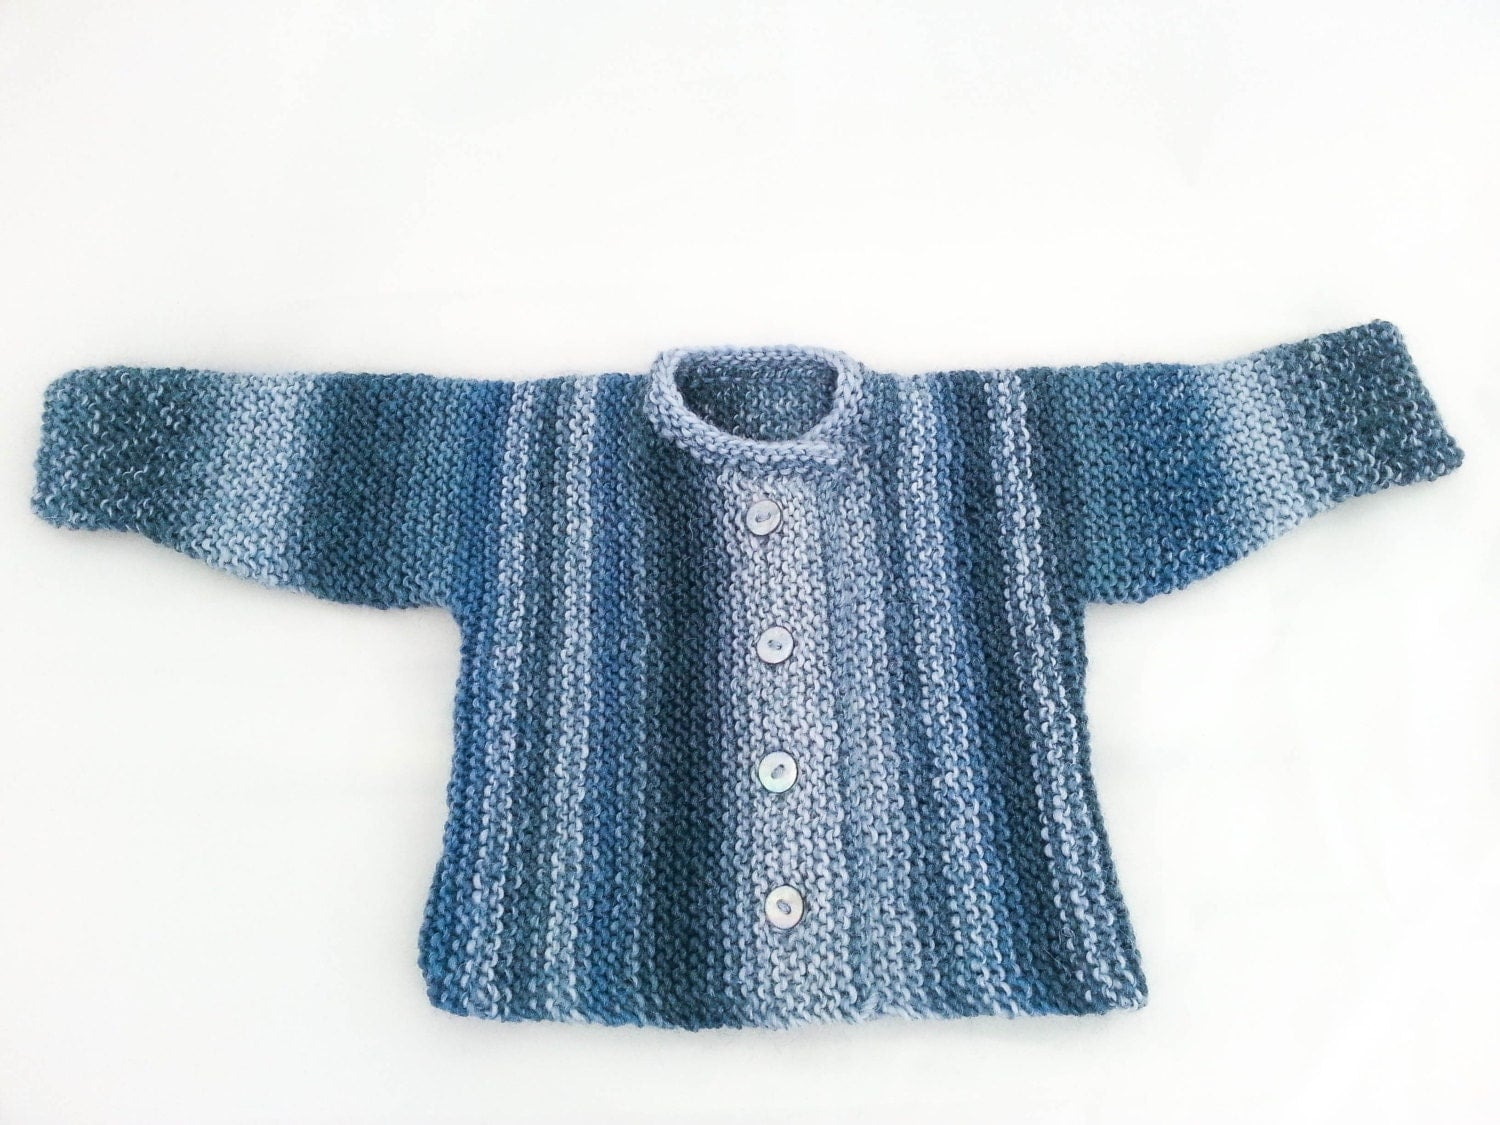 Knitting pattern garter stitch baby cardigan baby sweater 5 this is a digital file bankloansurffo Image collections